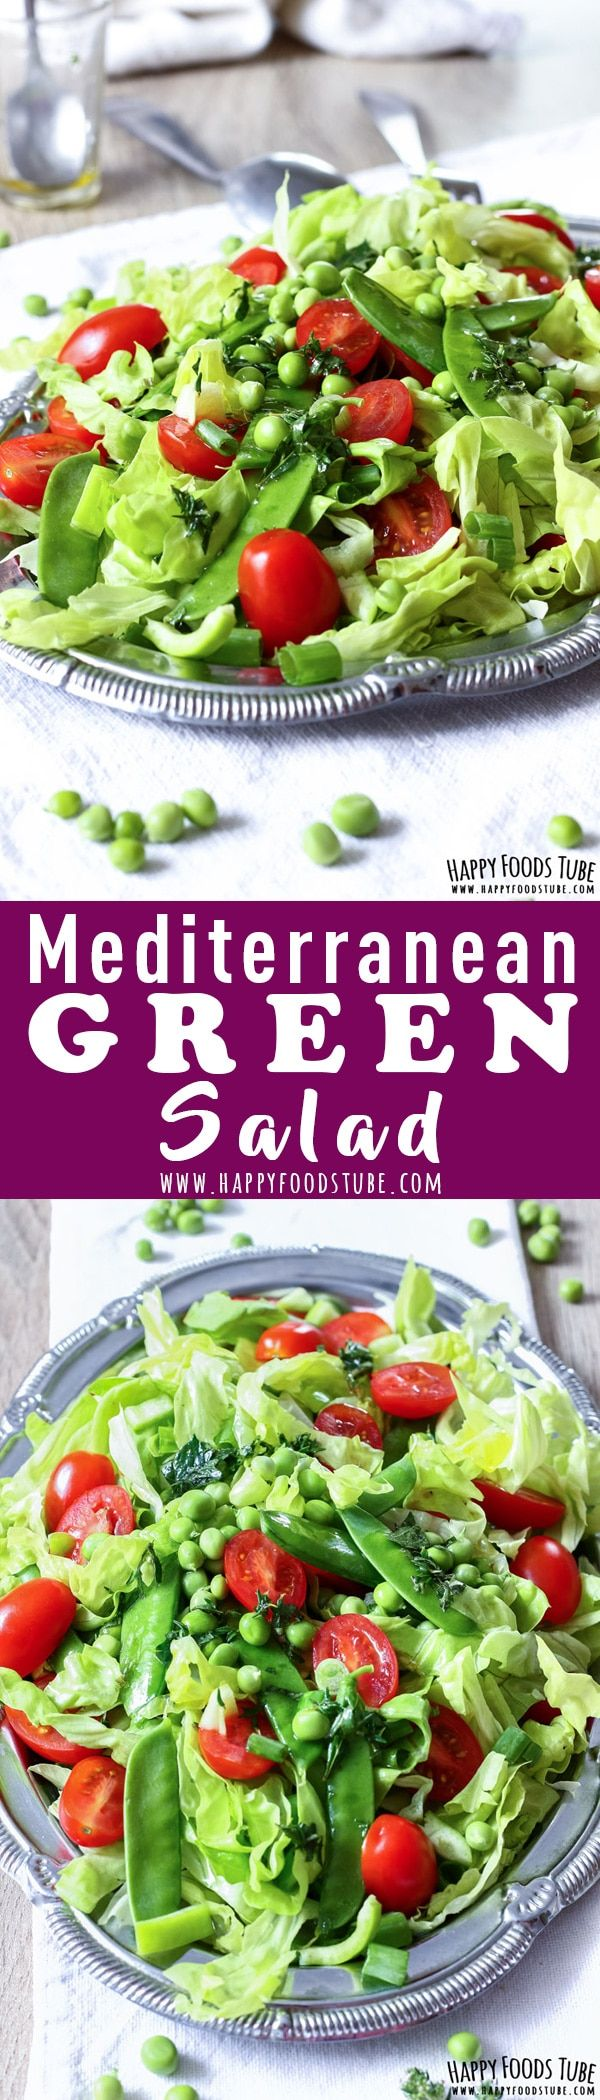 This crispy Mediterranean green salad is easy to make & ready in 10 minutes. It's perfect for outdoor entertaining and grill parties. Vegetarian Mediterranean diet recipe via @happyfoodstube